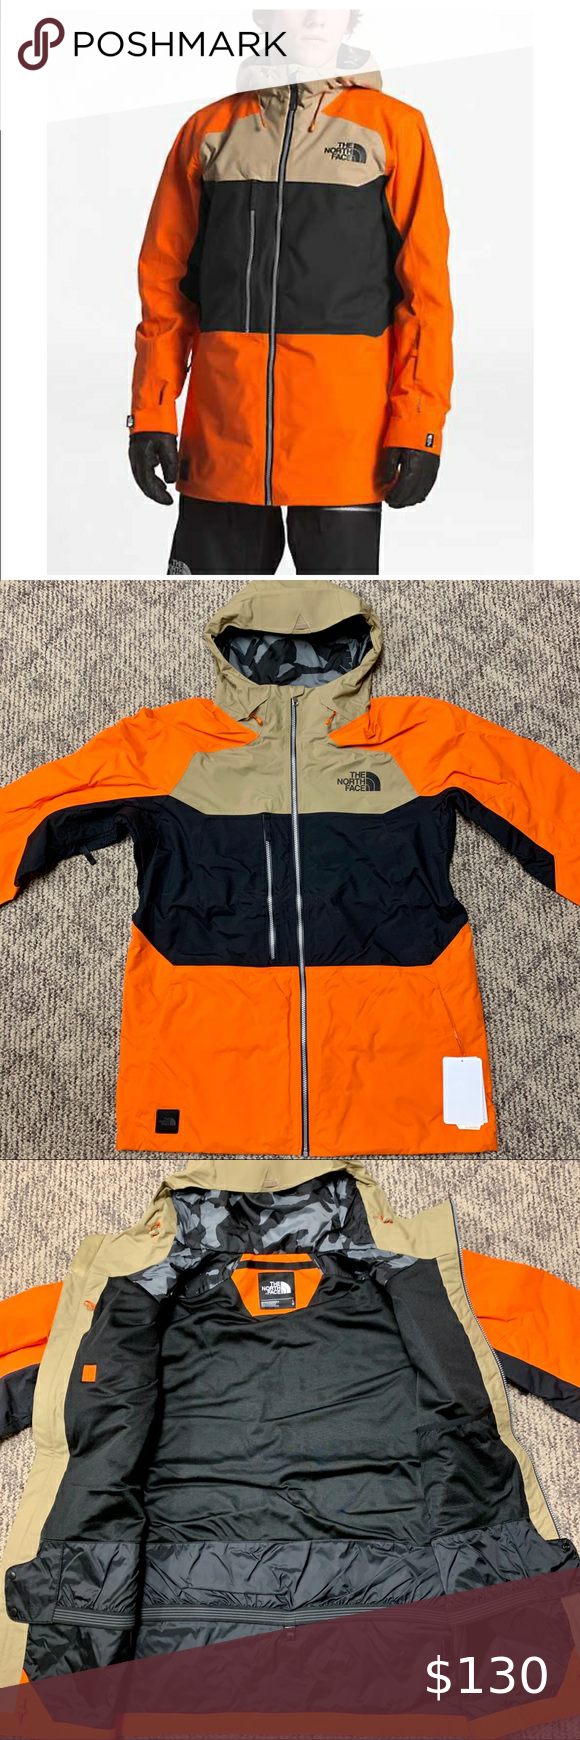 The North Face Repko Jacket North Face Jacket Jackets The North Face [ 1740 x 580 Pixel ]